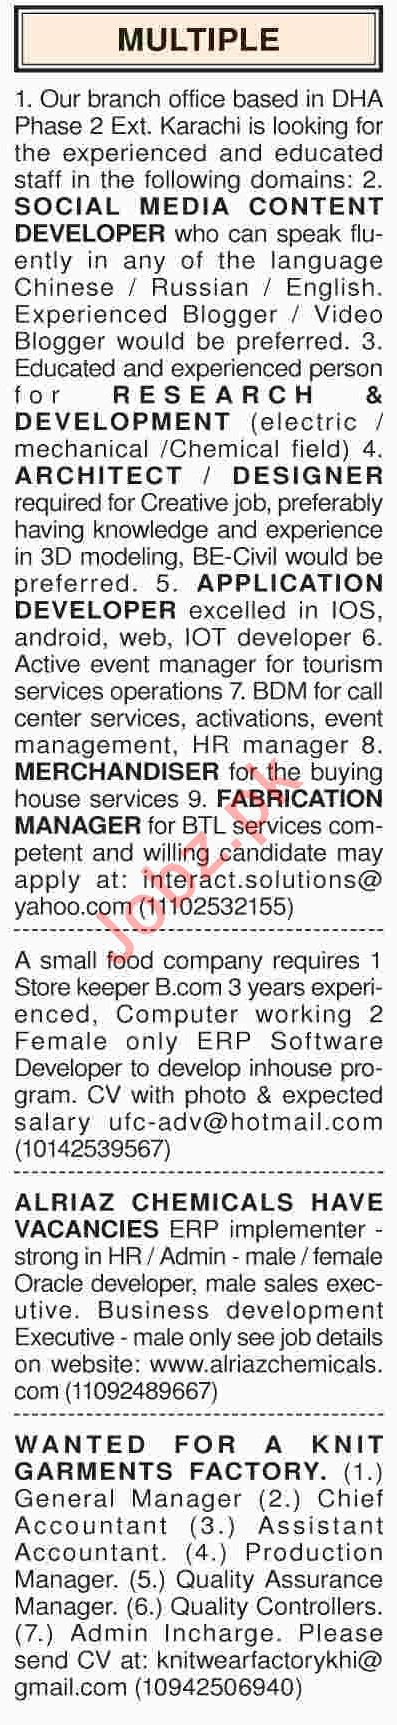 Dawn Sunday Classified Ads 3rd March 2019 for Multiple Staff